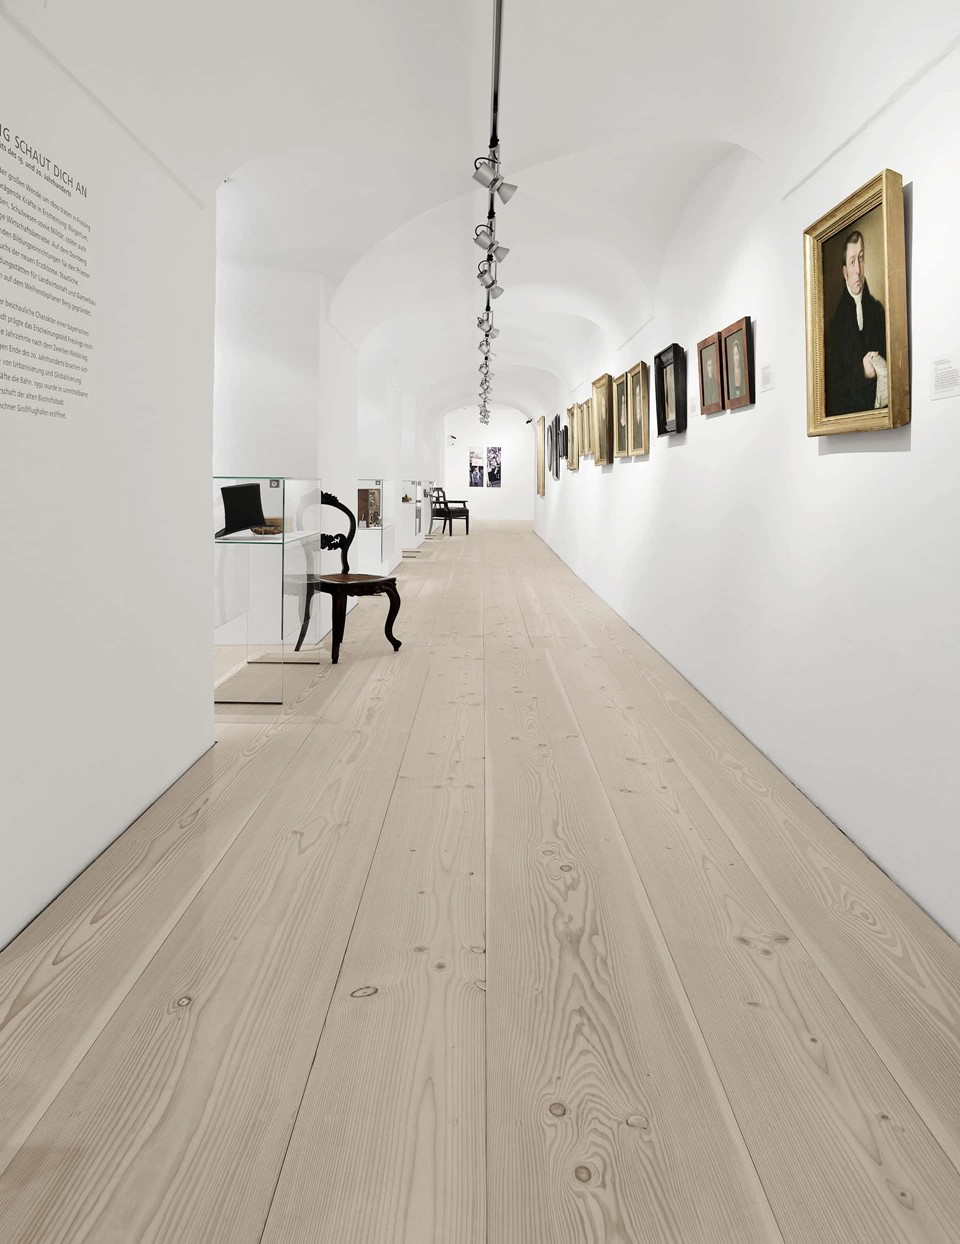 douglas-wood-floorboards_lye-natural-soap_stadtmuseum-freising_dinesen.jpg